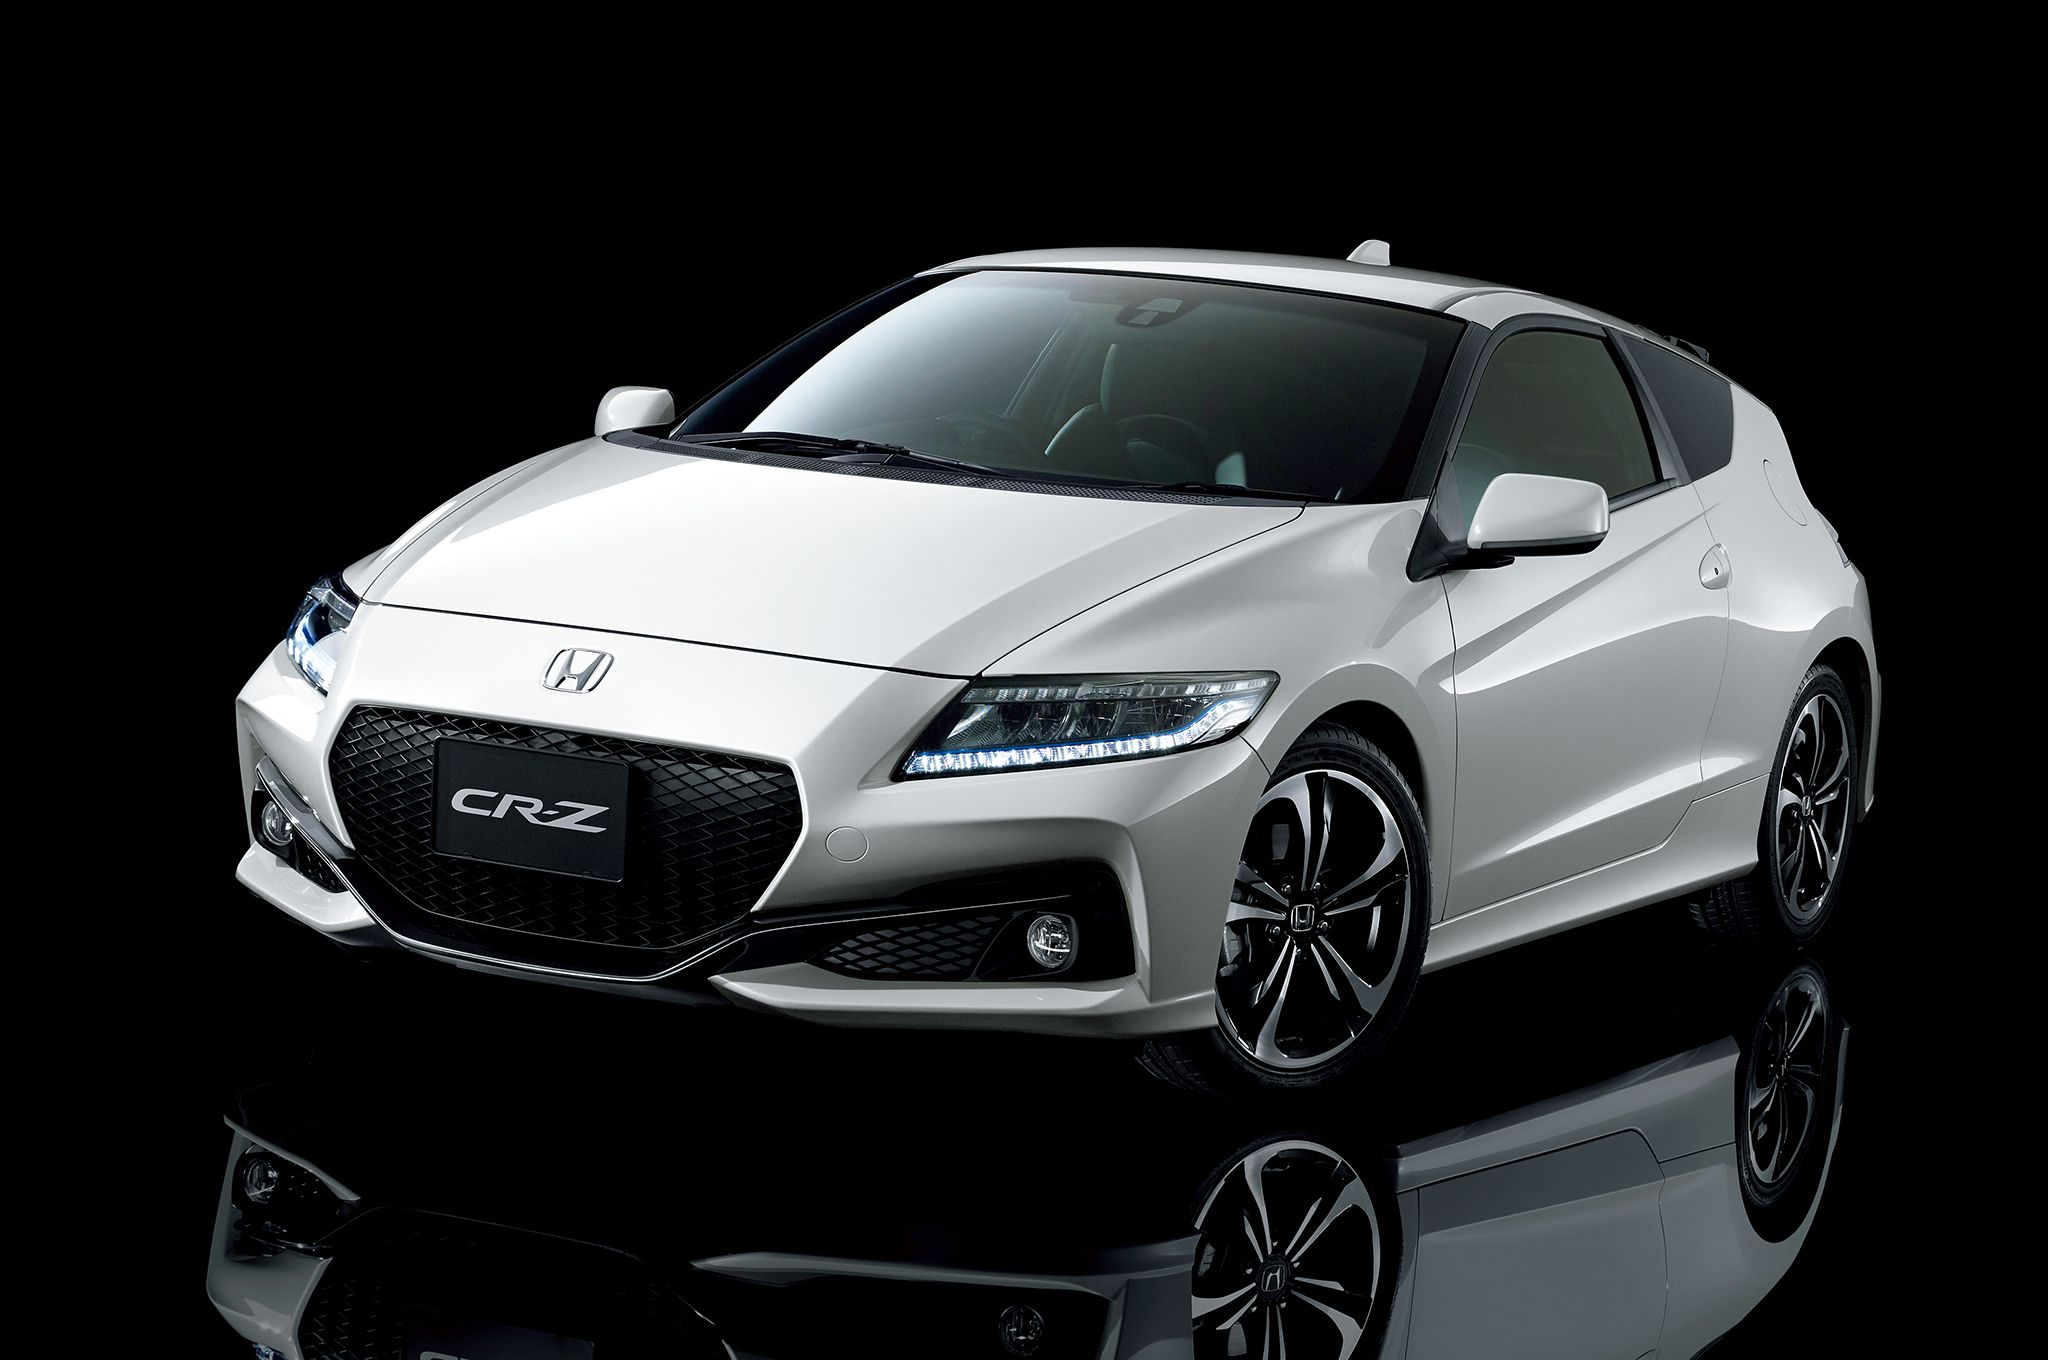 Honda CR Z by Mugen with 200 Horsepower Hybrid Mugen unveiled this